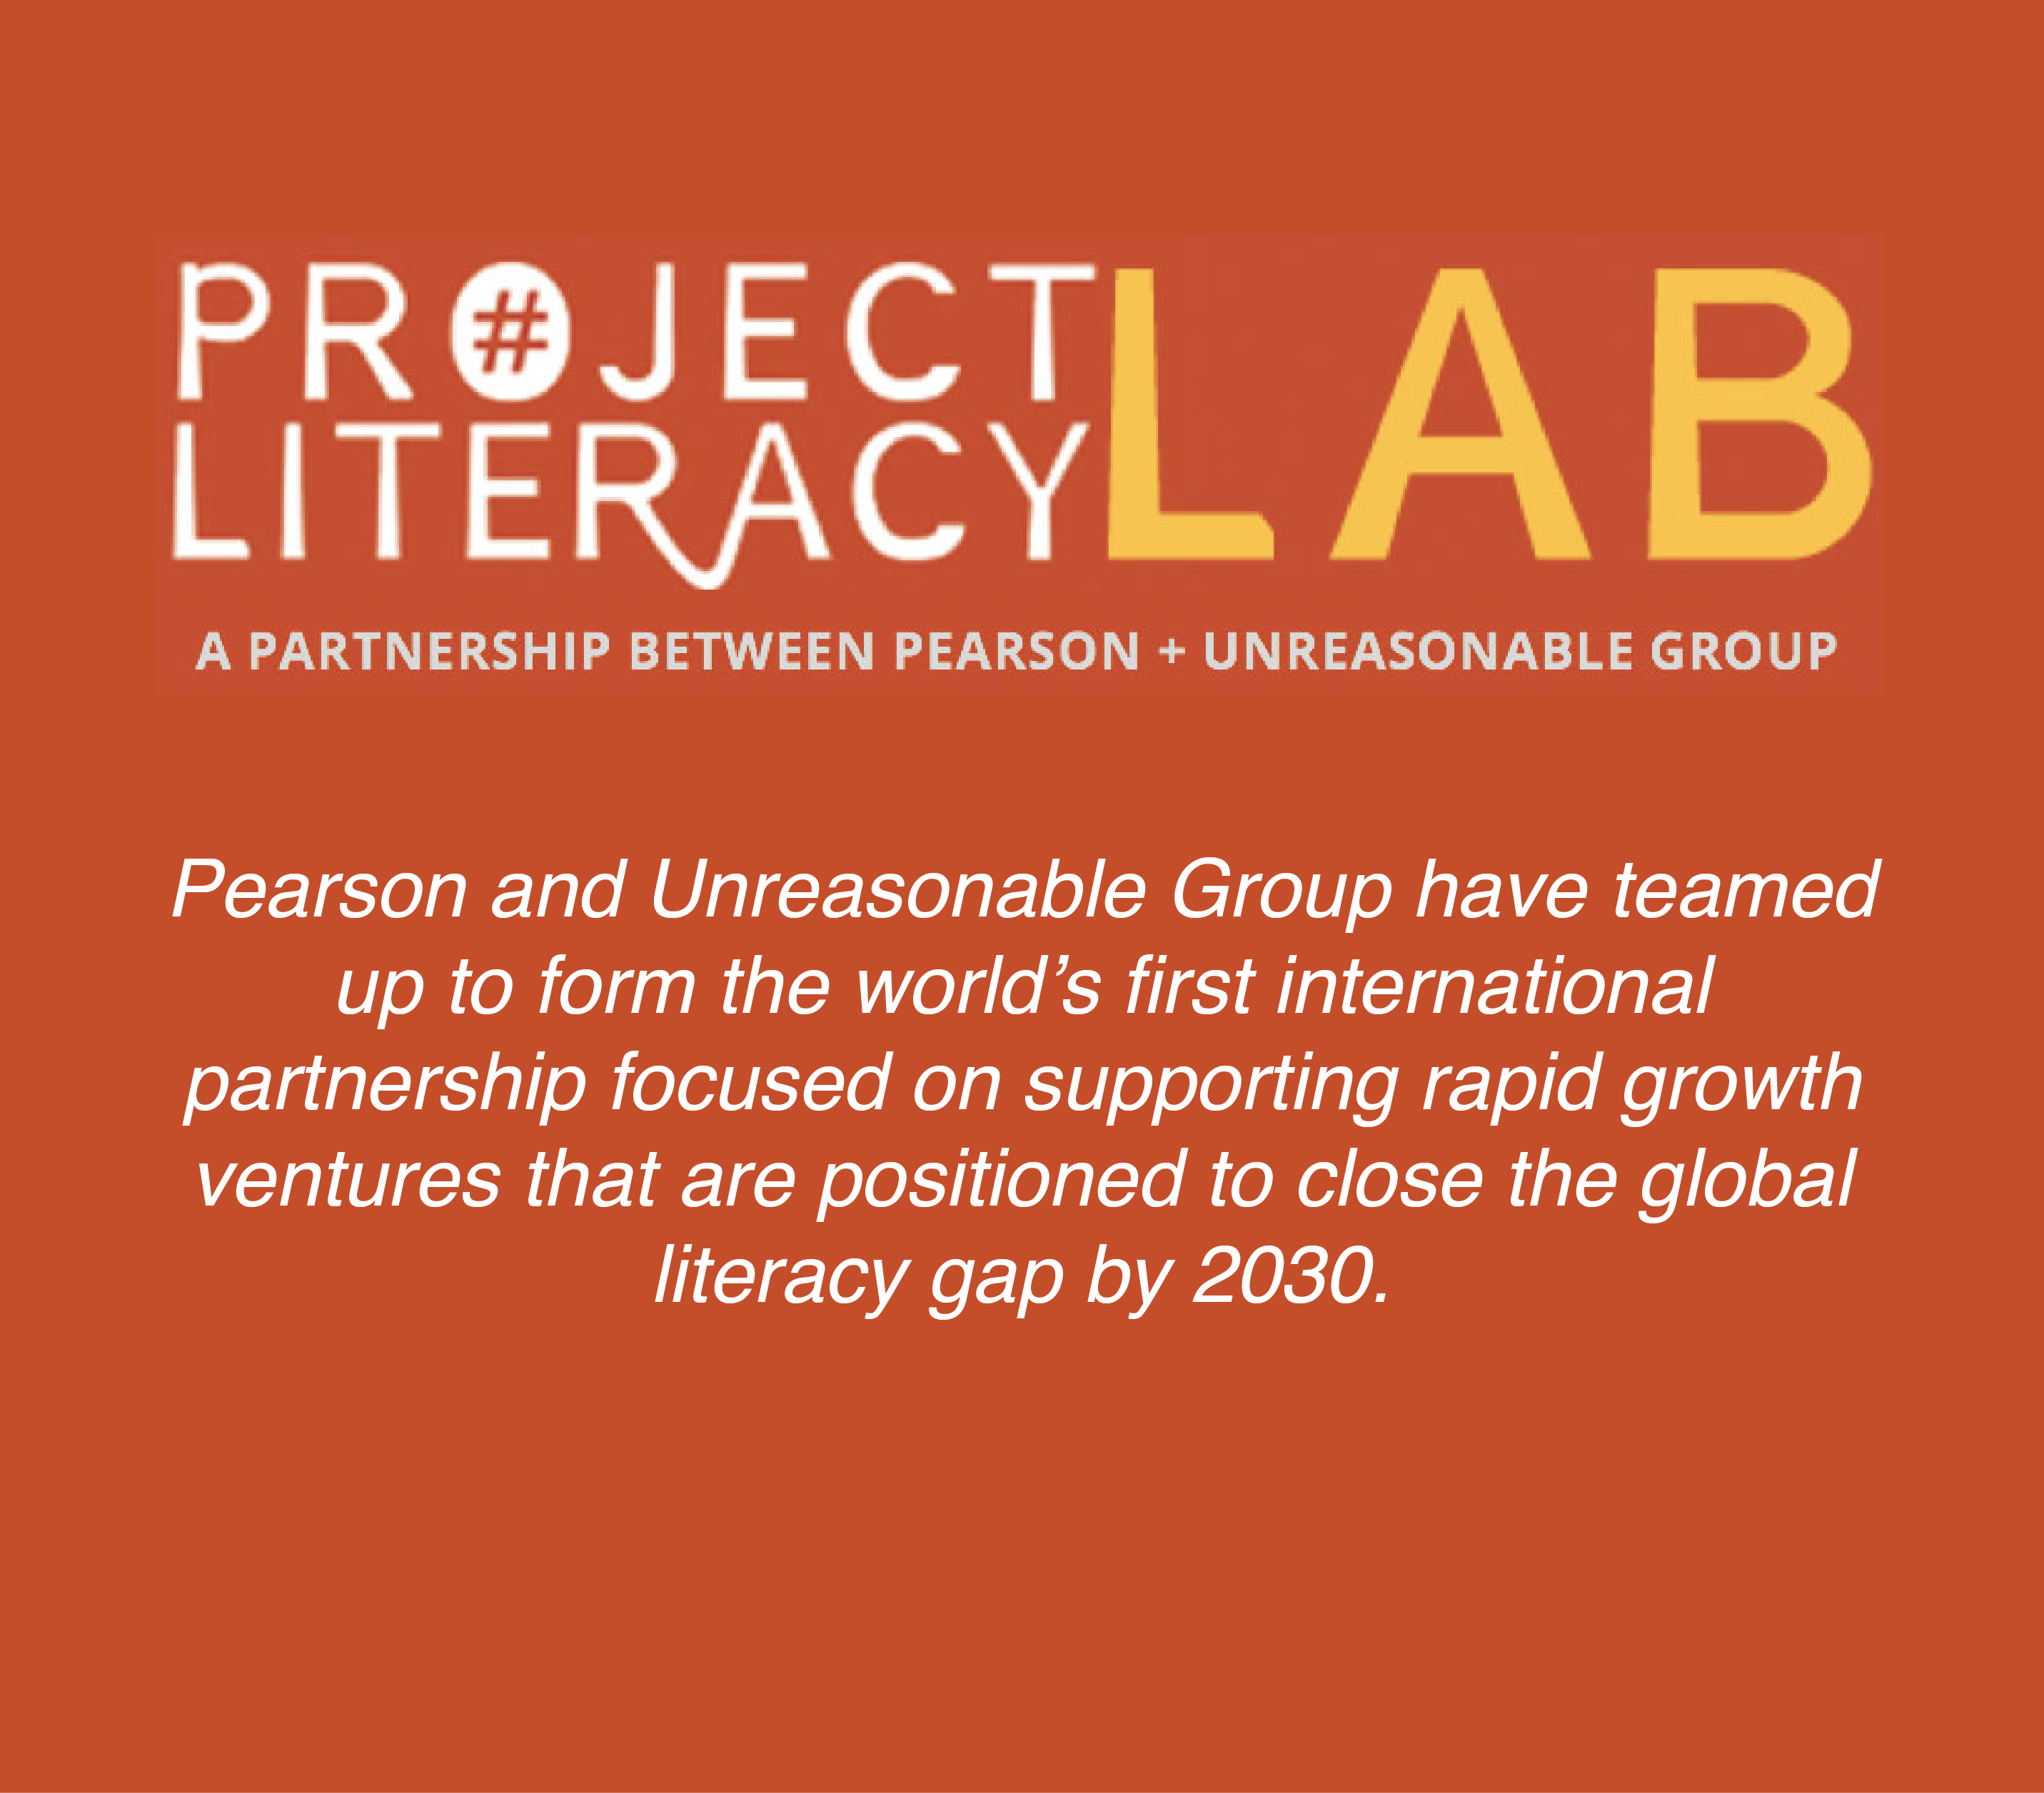 Made Possible in Partnership with Pearson